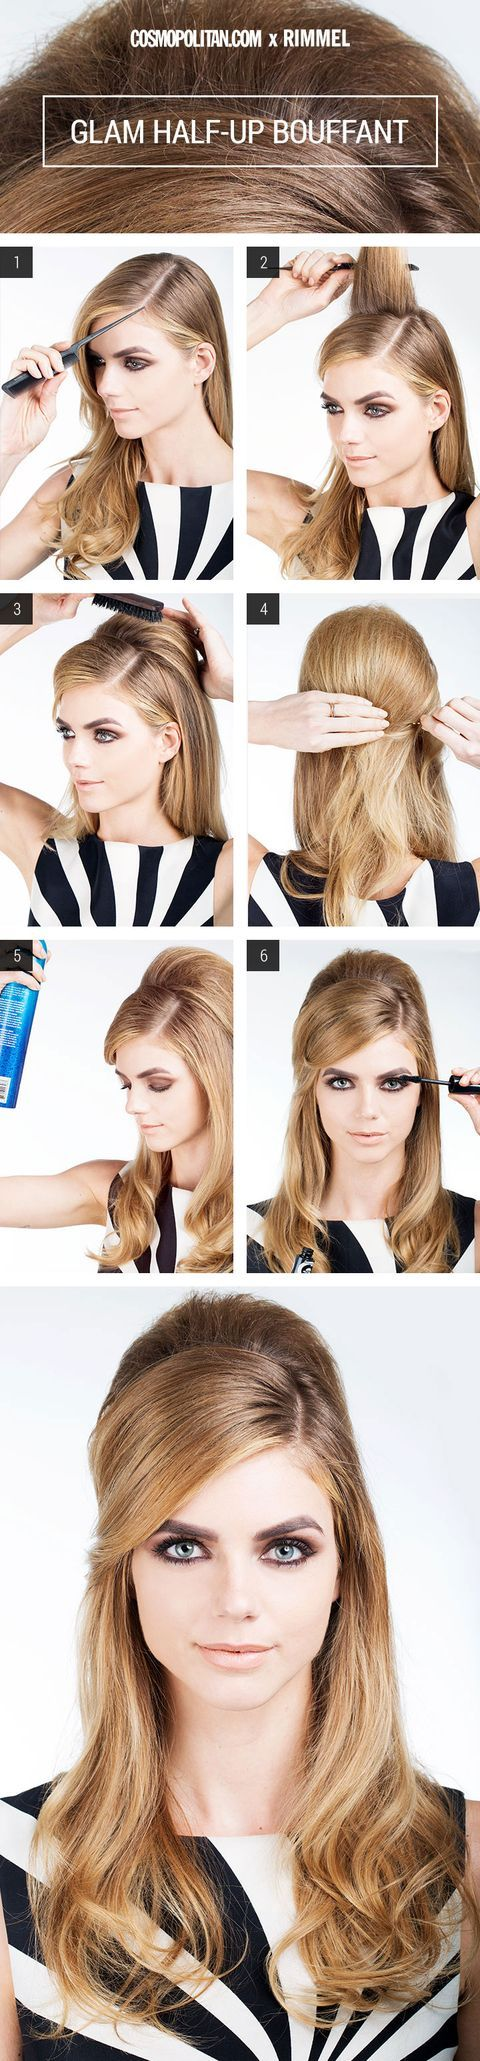 Hair How-To: Glam Half-Up Bouffant